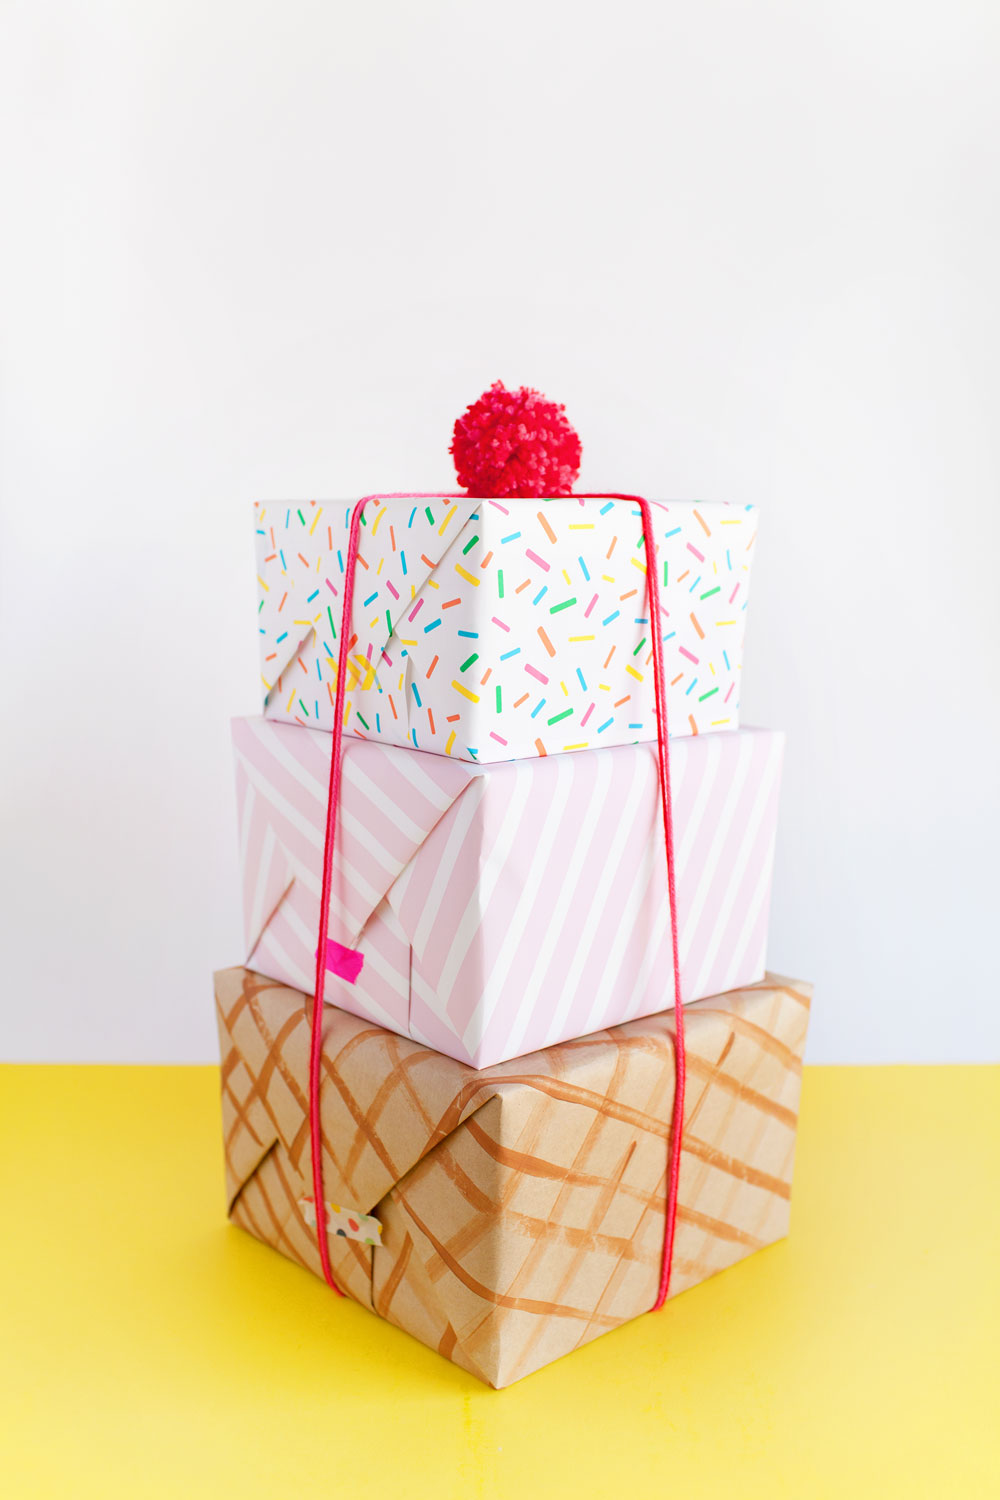 ice-cream-inspired-wrapping-paper